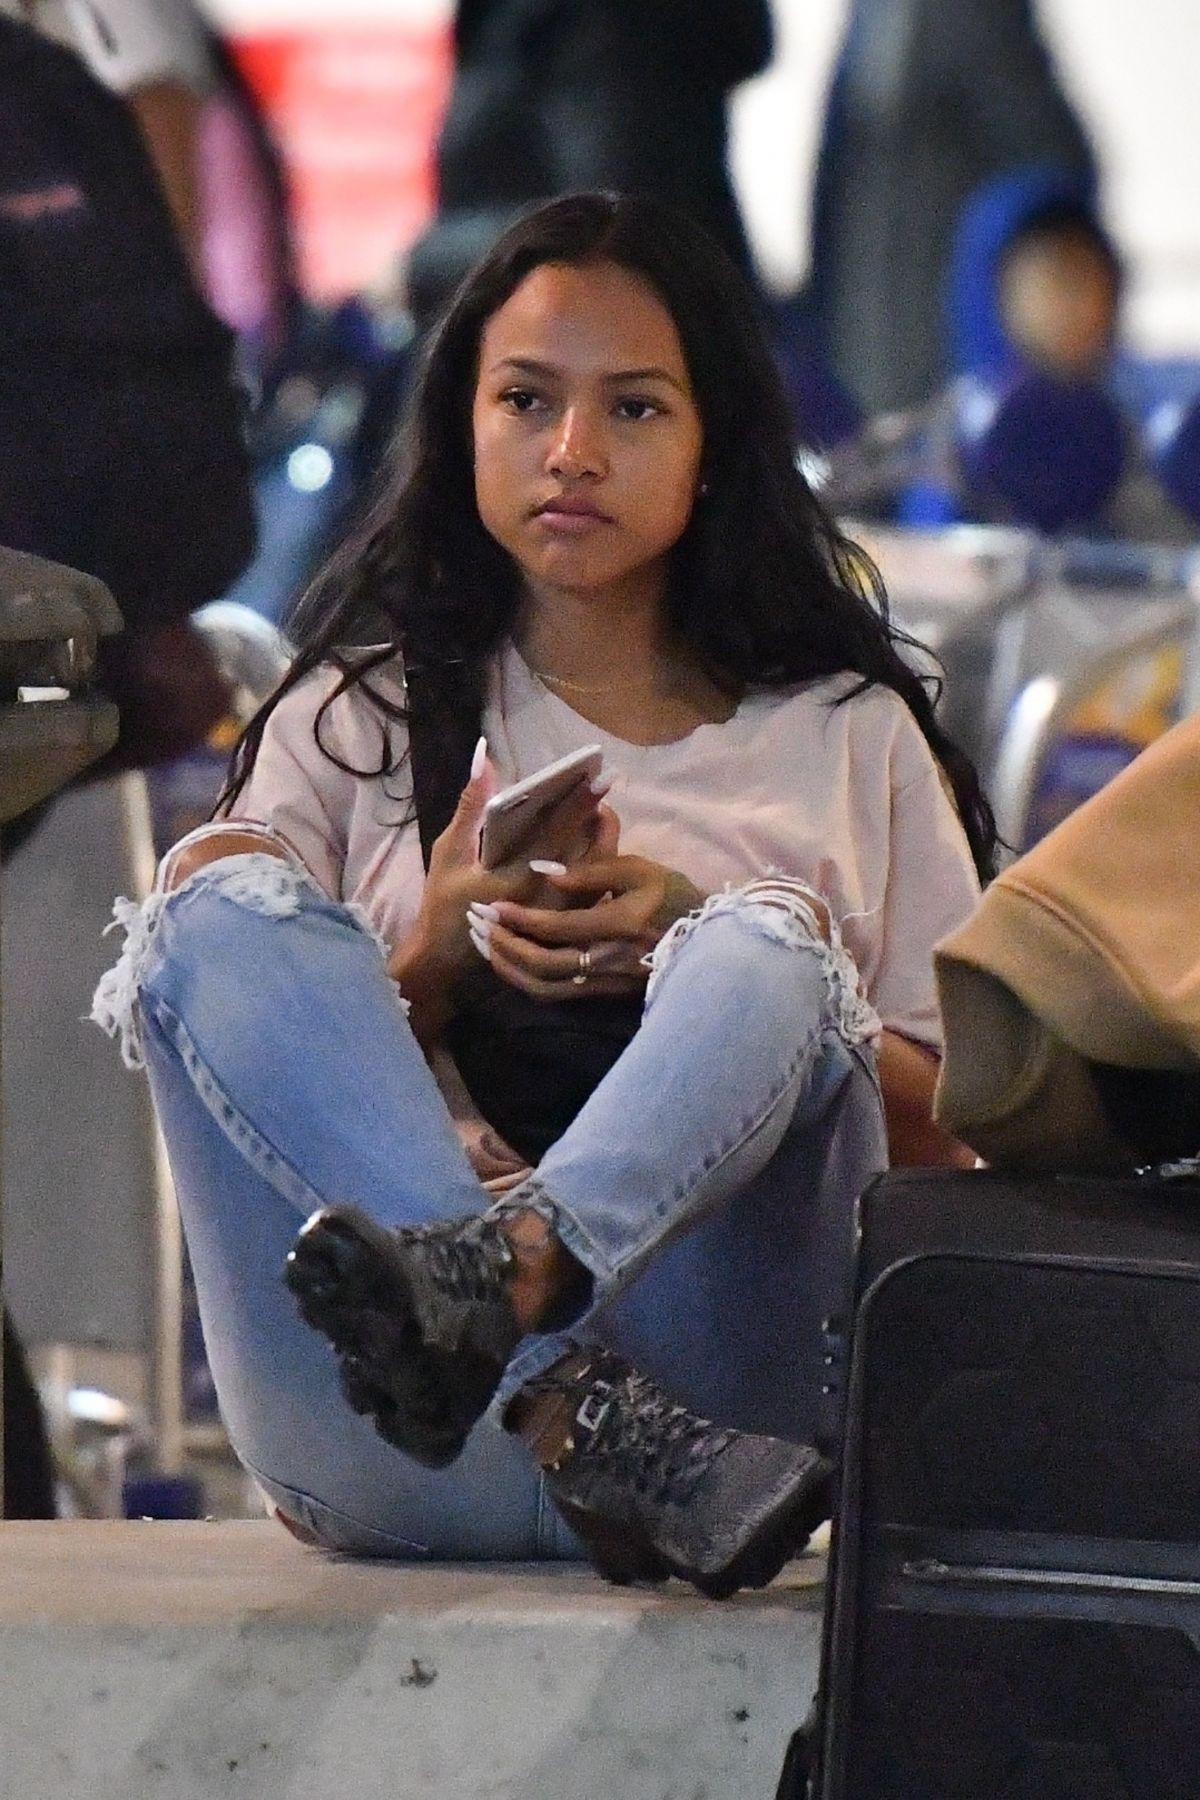 karrueche tran at lax airport in los angeles 03 01 2018 hawtcelebs